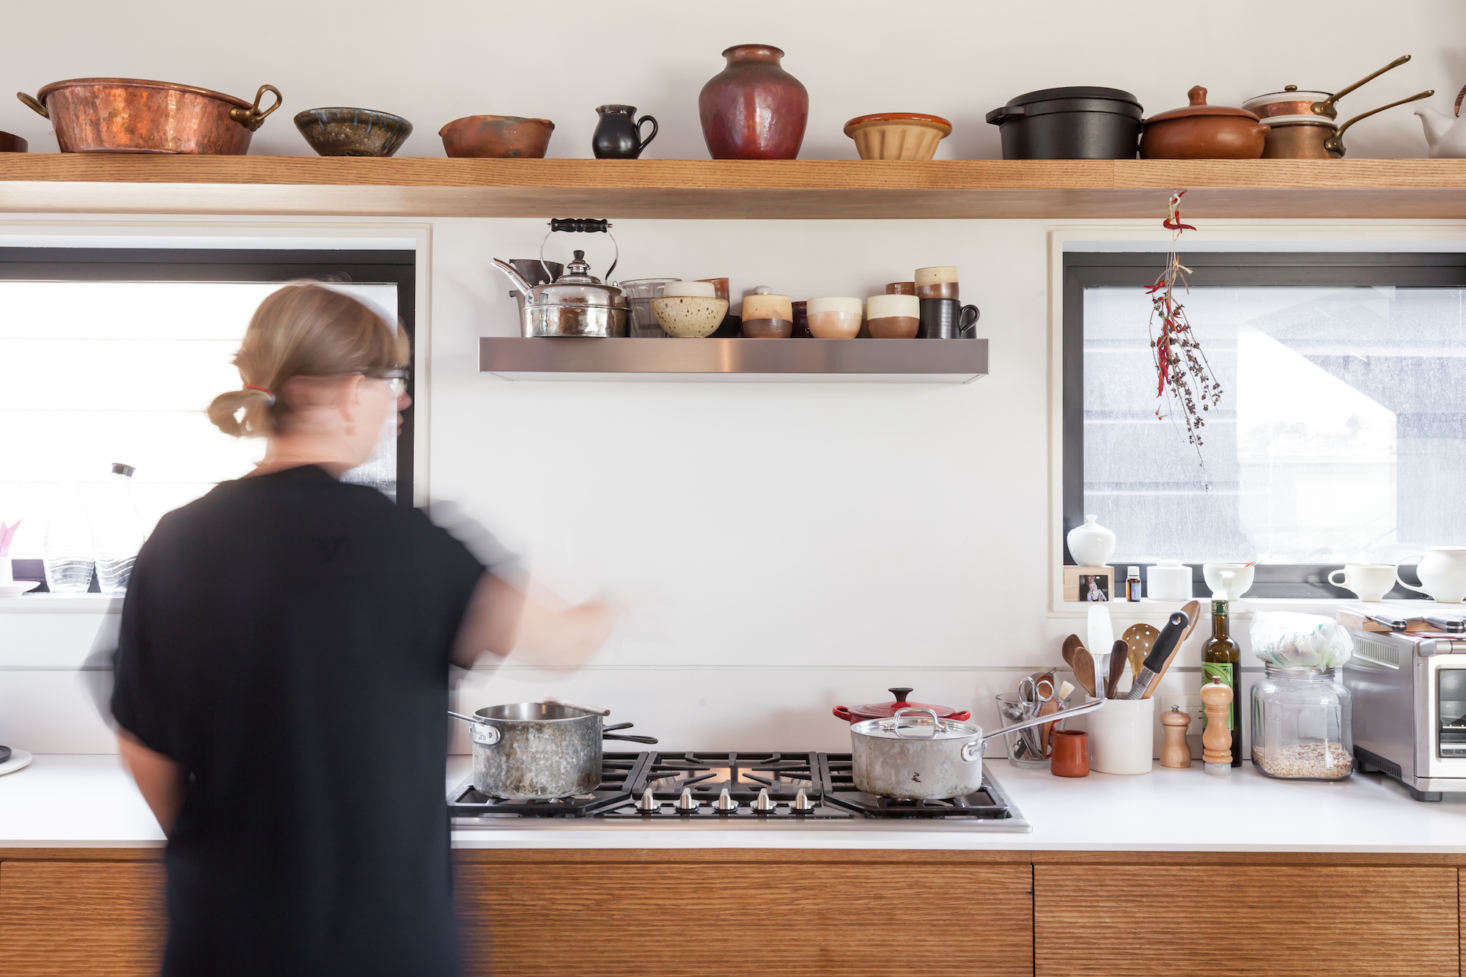 Tour the Home Kitchen of Tartine Owners Elisabeth Prueitt and Chad ...